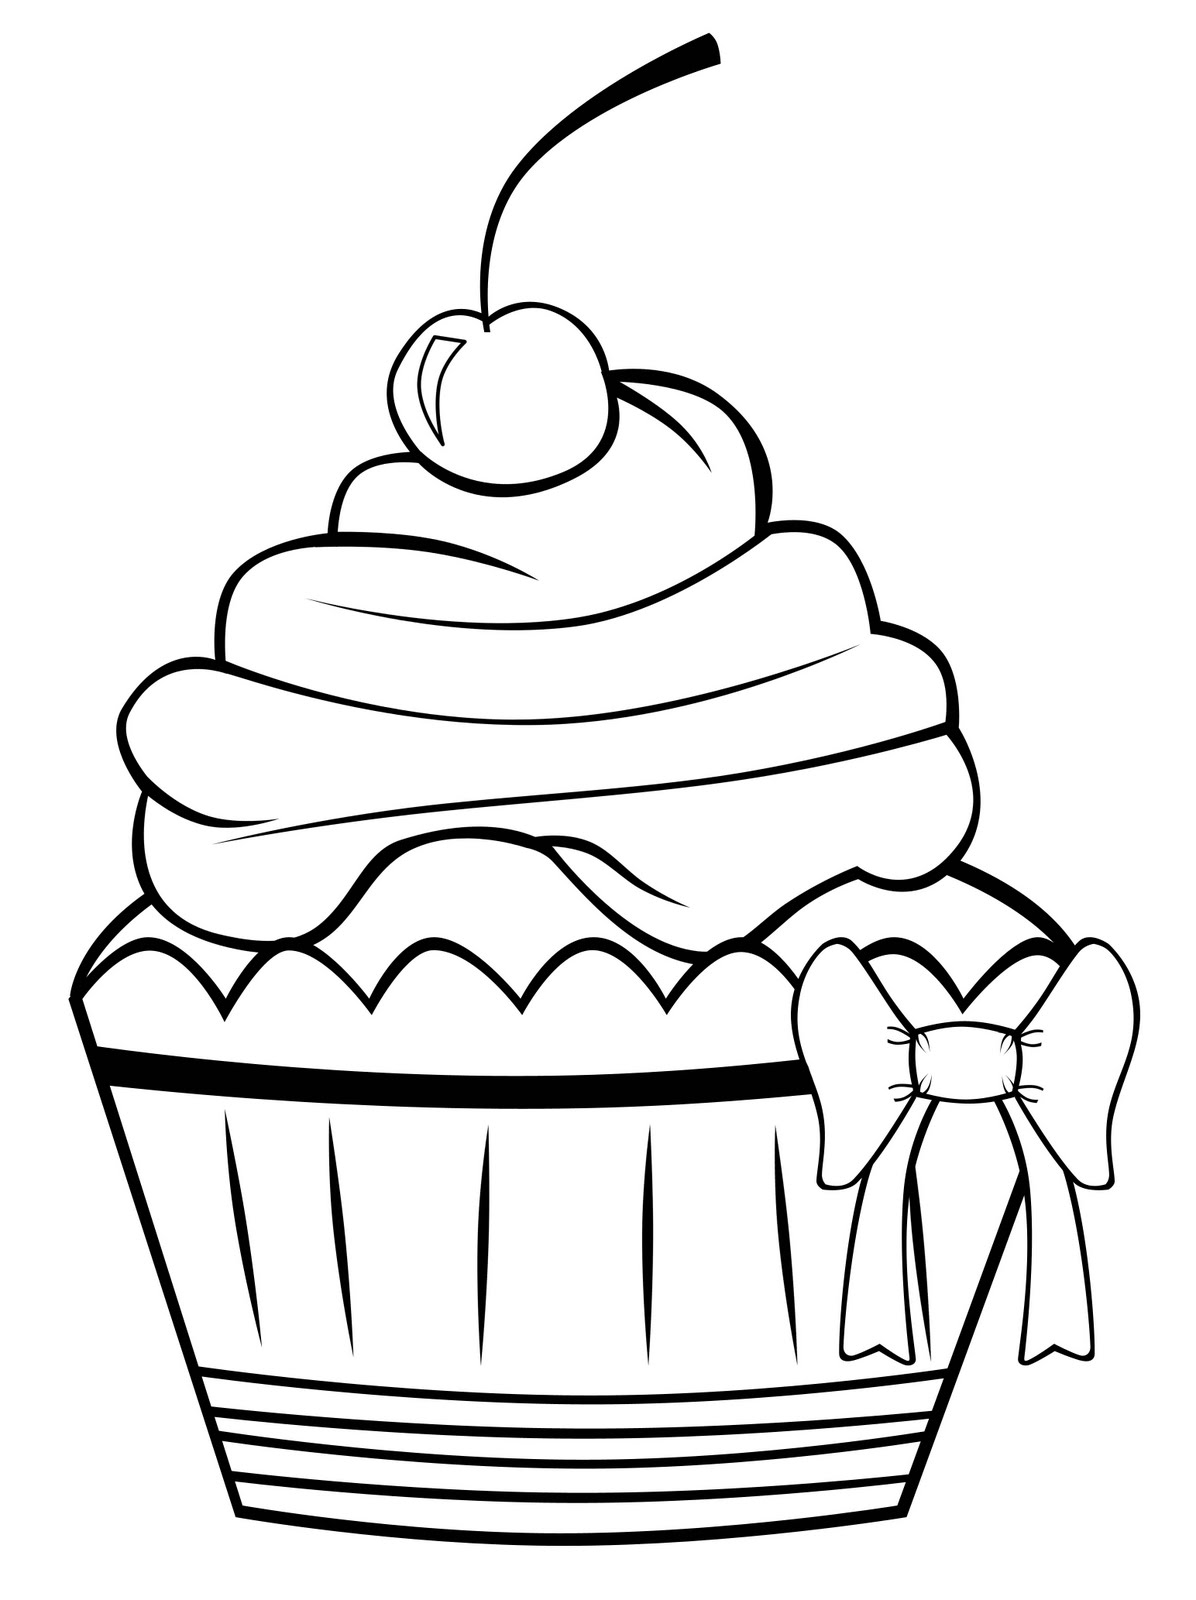 simple cake coloring pages transmissionpress the wedding cakes coloring sheet for simple cake pages coloring